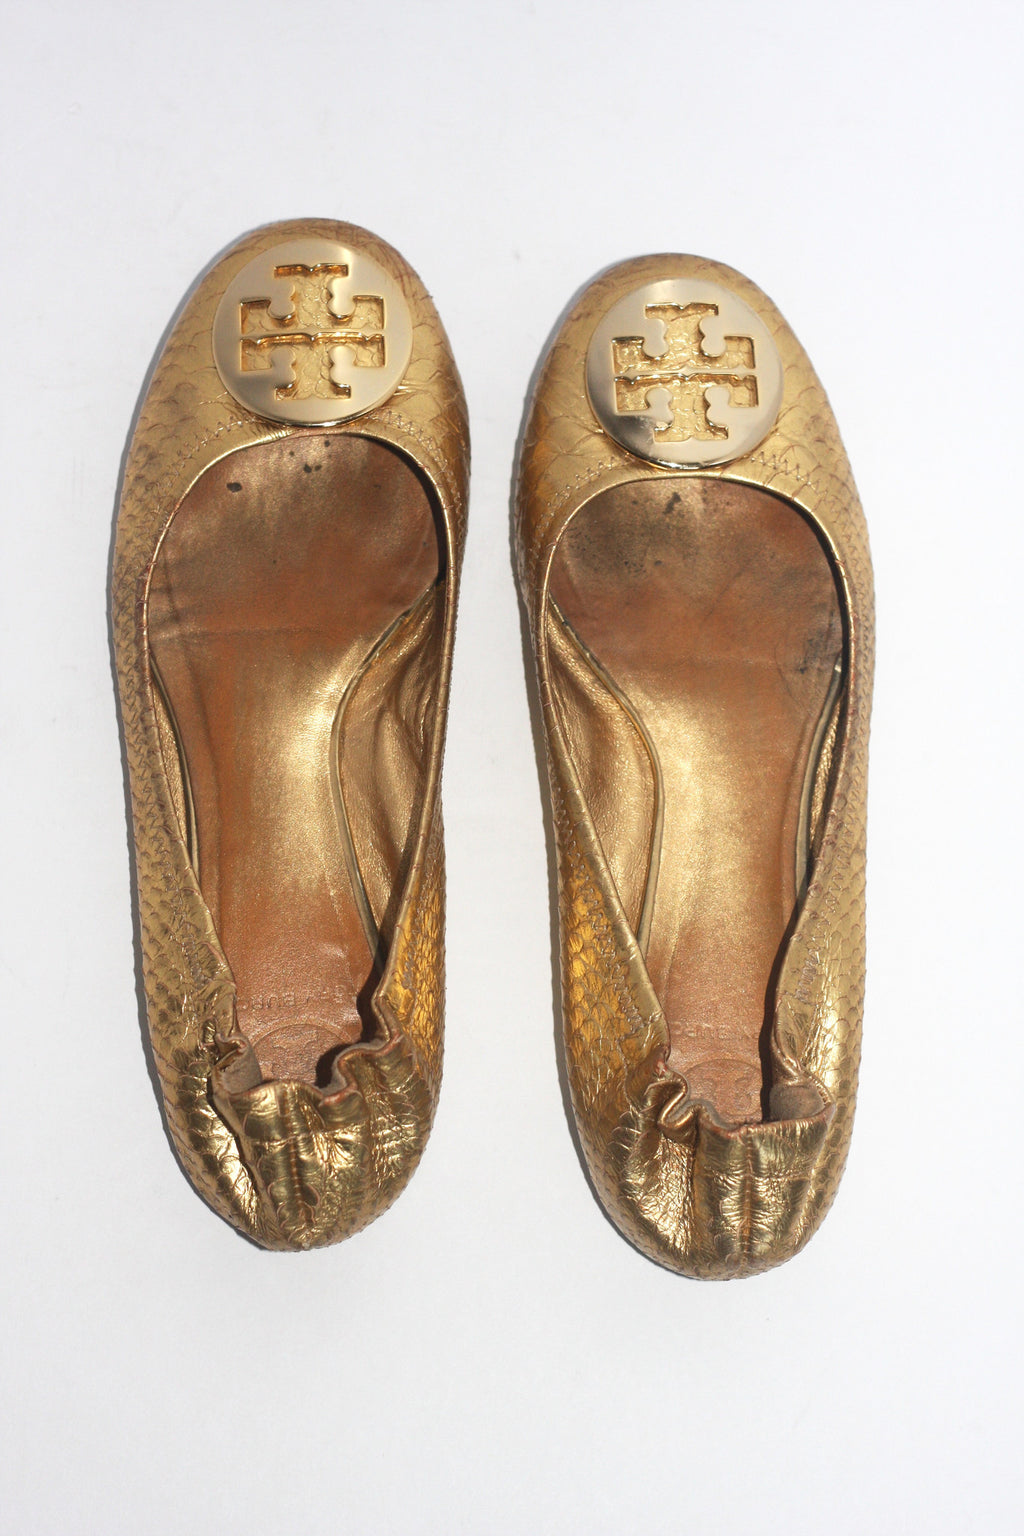 Tory Burch Metallic Gold Reva Snakeskin Leather Flats - Joyce's Closet  - 1